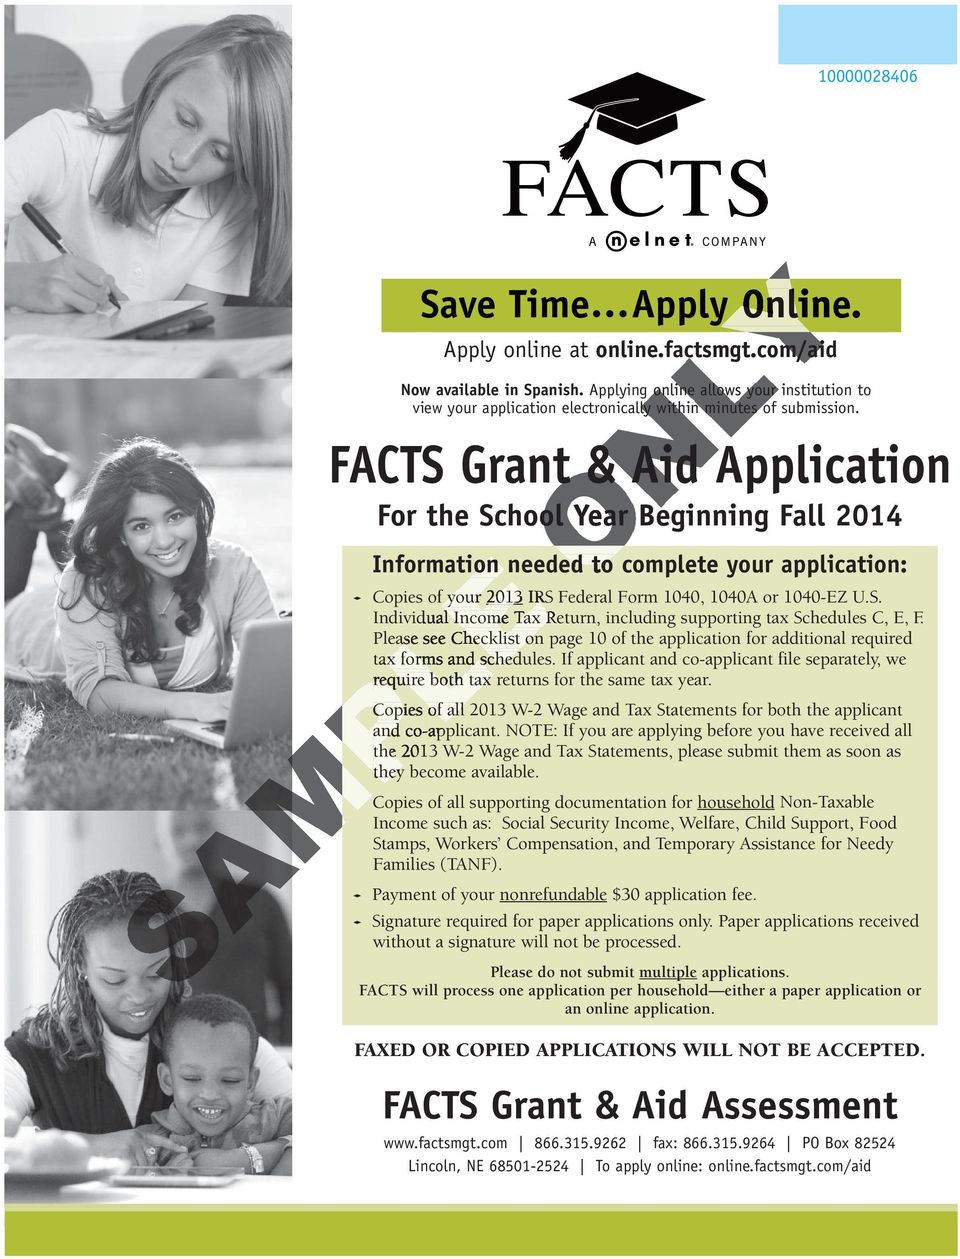 FACTS Grant & Aid Application For the School Year Beginning Fall 2014 Information needed to complete your application: Copies of your 2013 IRS Federal Form 1040, 1040A or 1040-EZ U.S. Individual dual Income Tax Return, including supporting tax Schedules C, E, F.